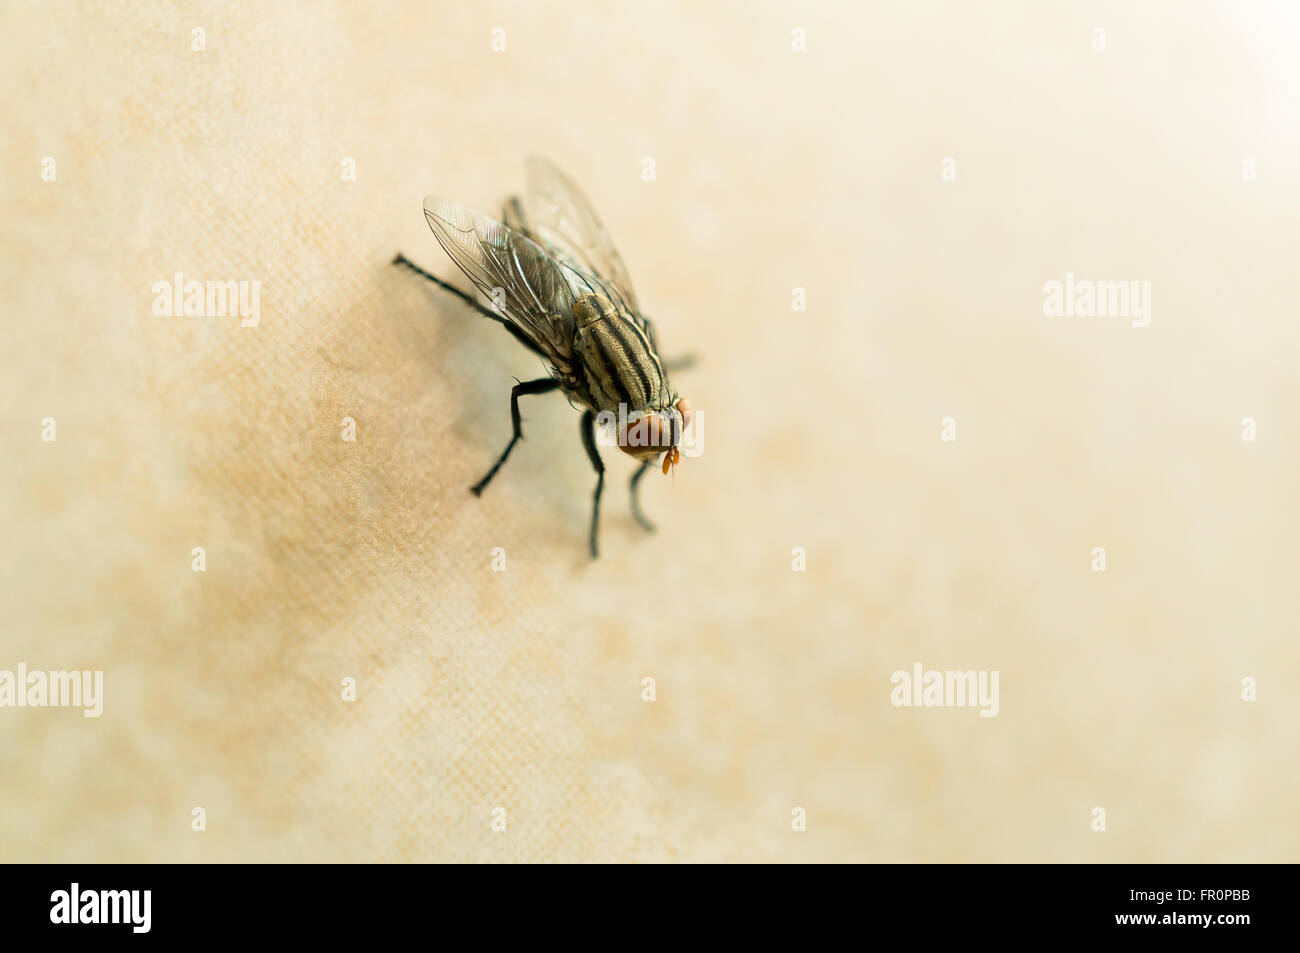 Closeup of housefly on yellow tile floor with copy space. Selective focus. Stock Photo